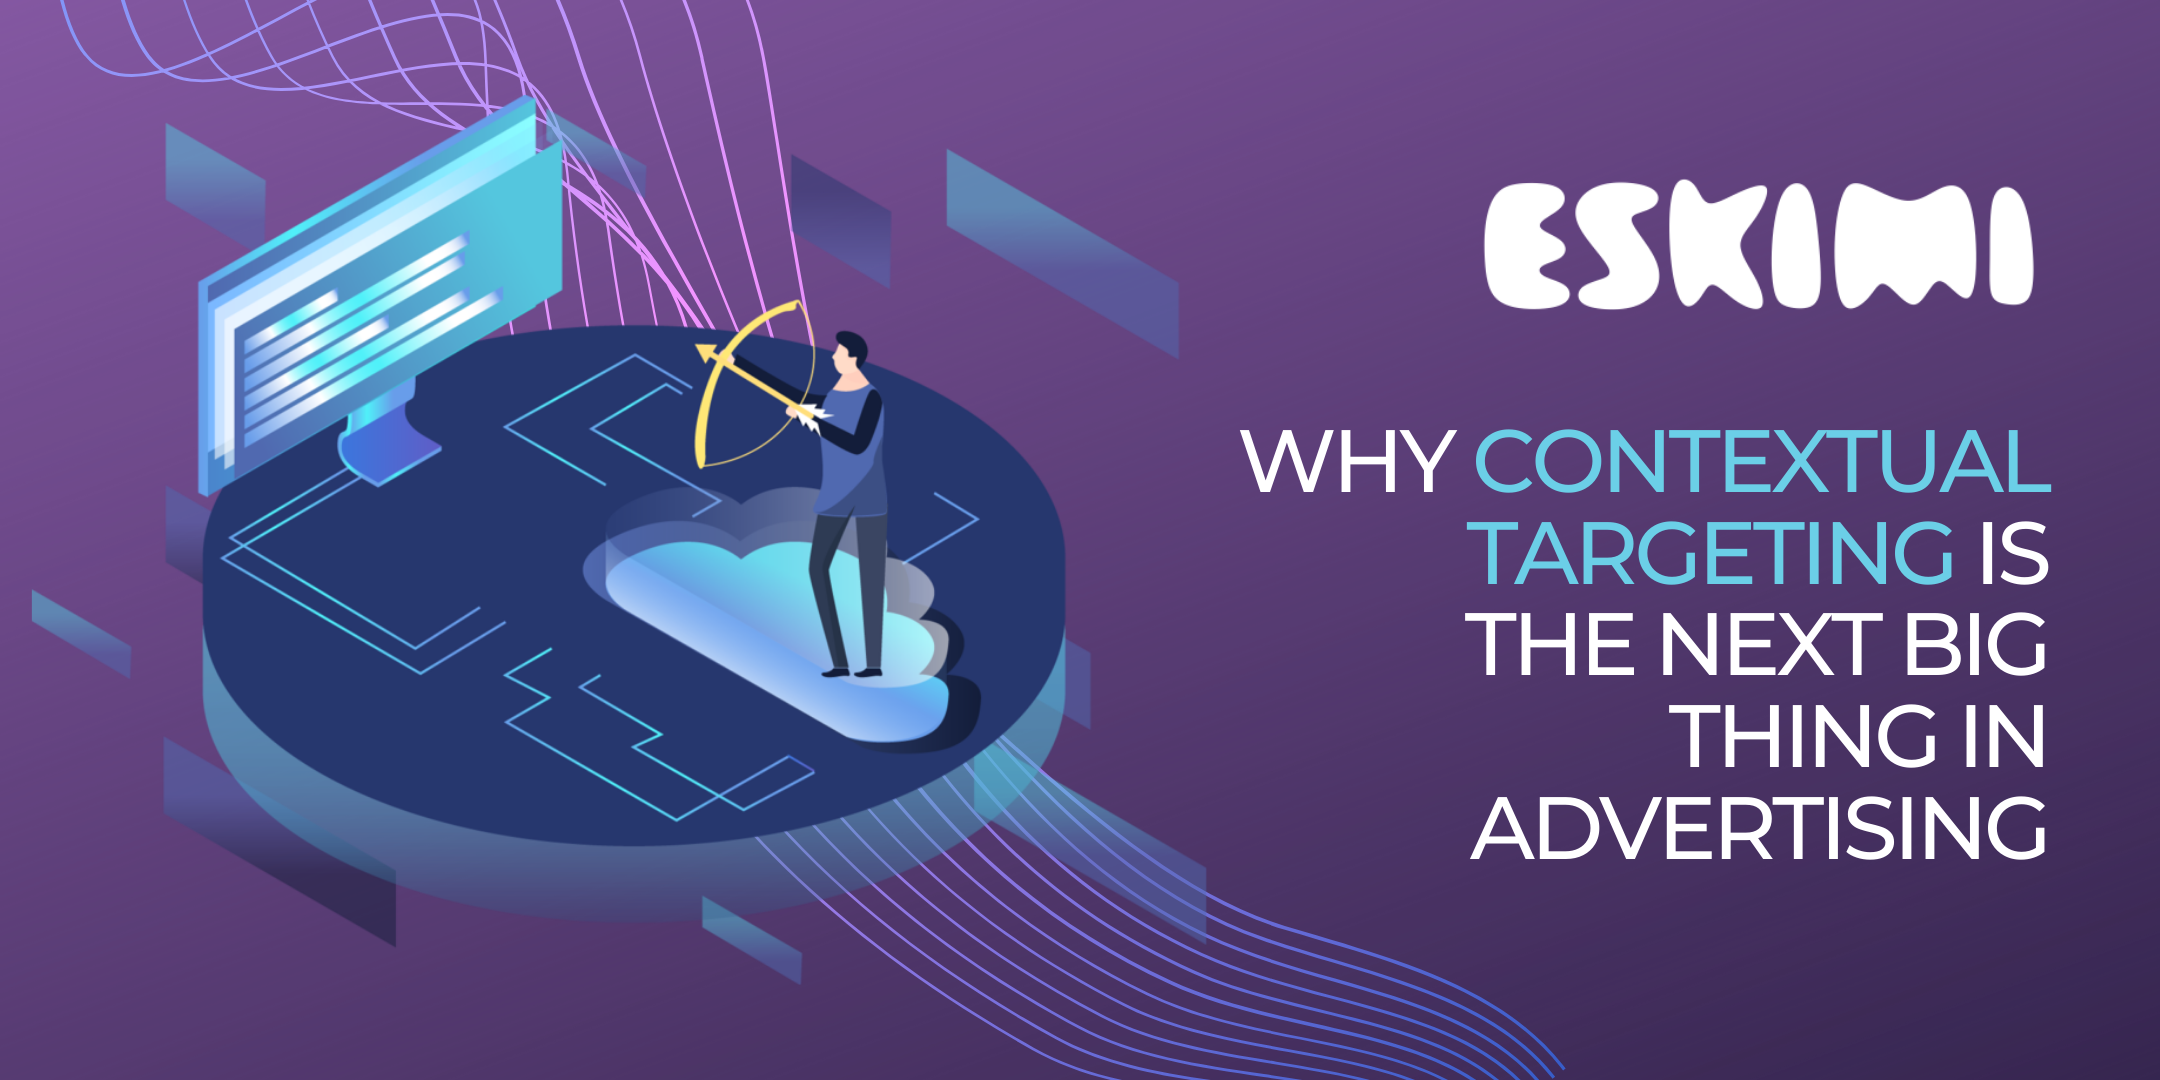 Why Contextual Targeting is the Next Big Thing in Advertising